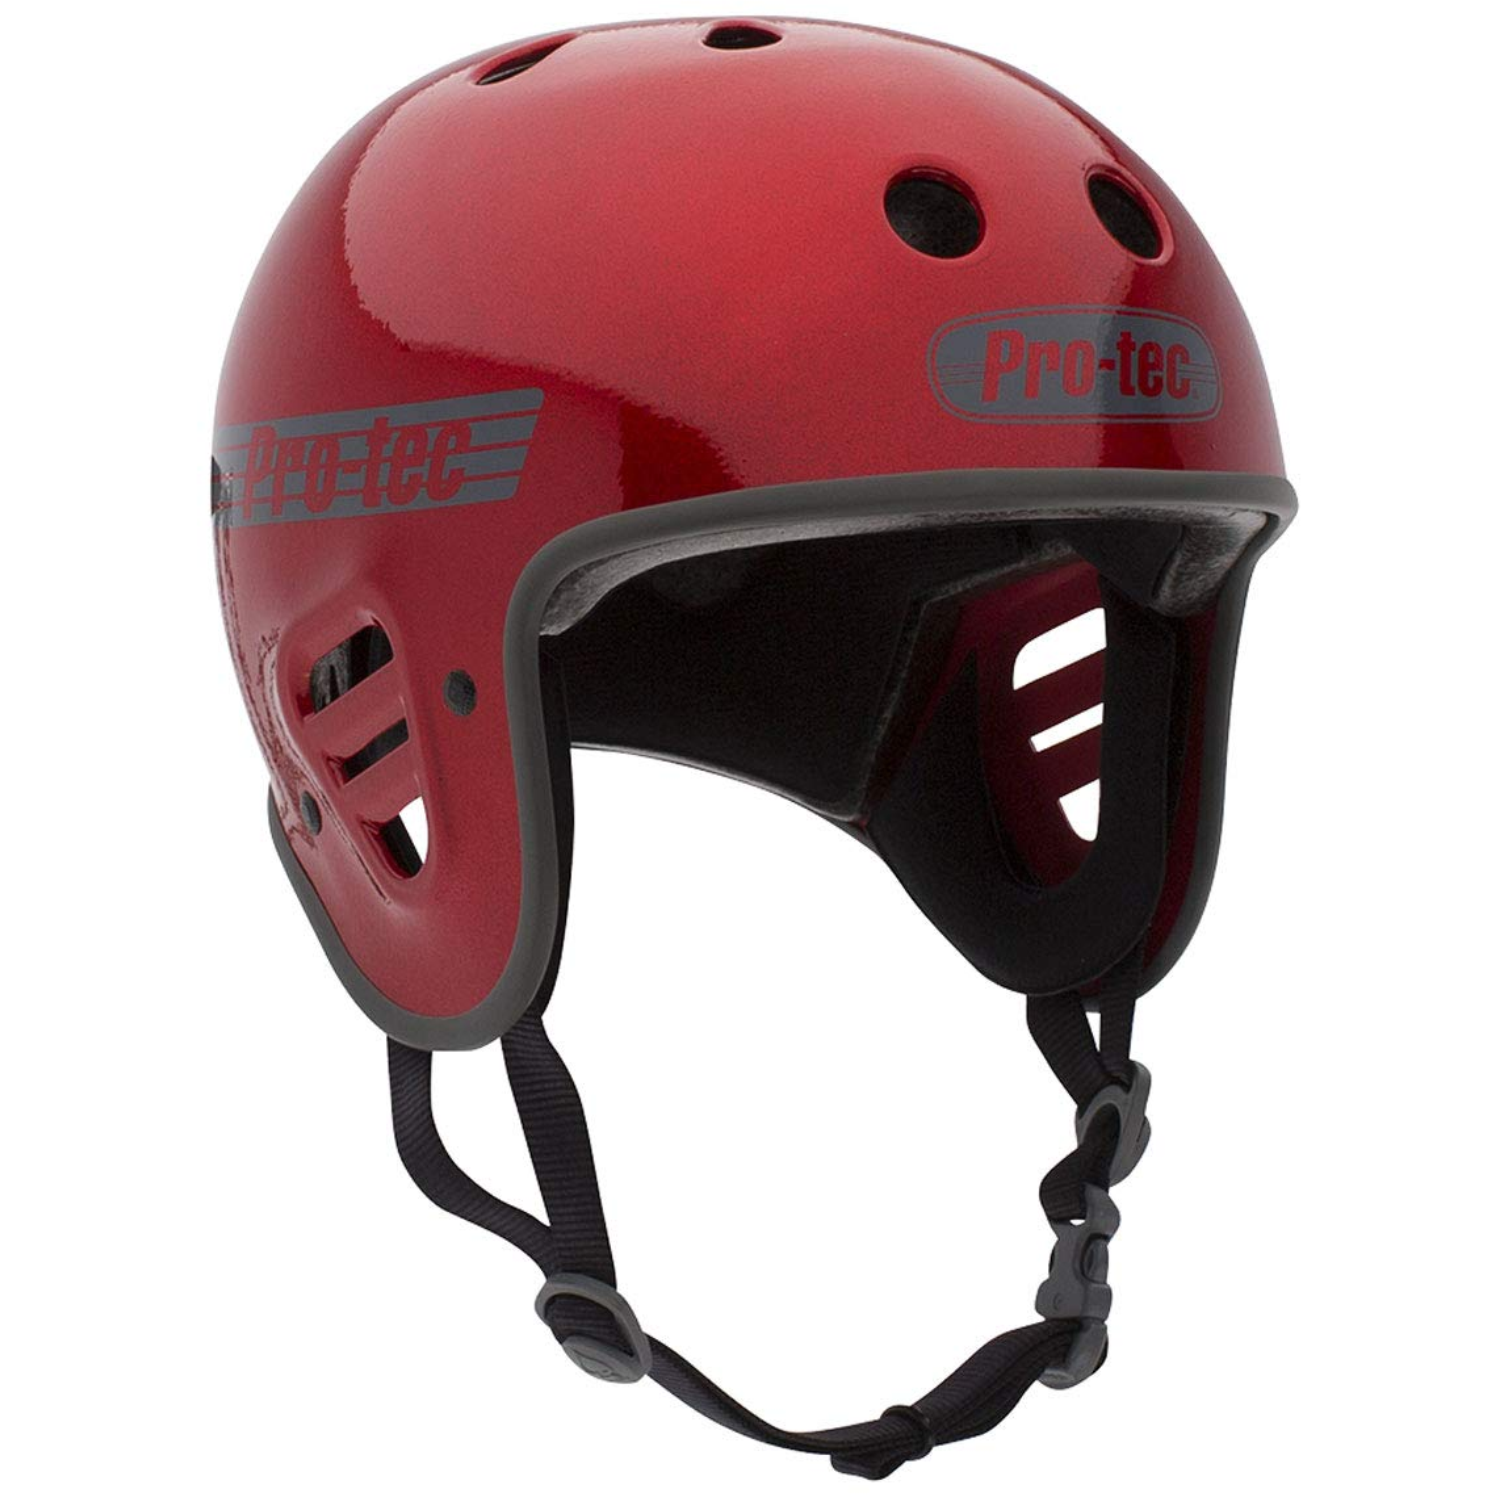 Casco Pro-tec Full Cut red metal flake